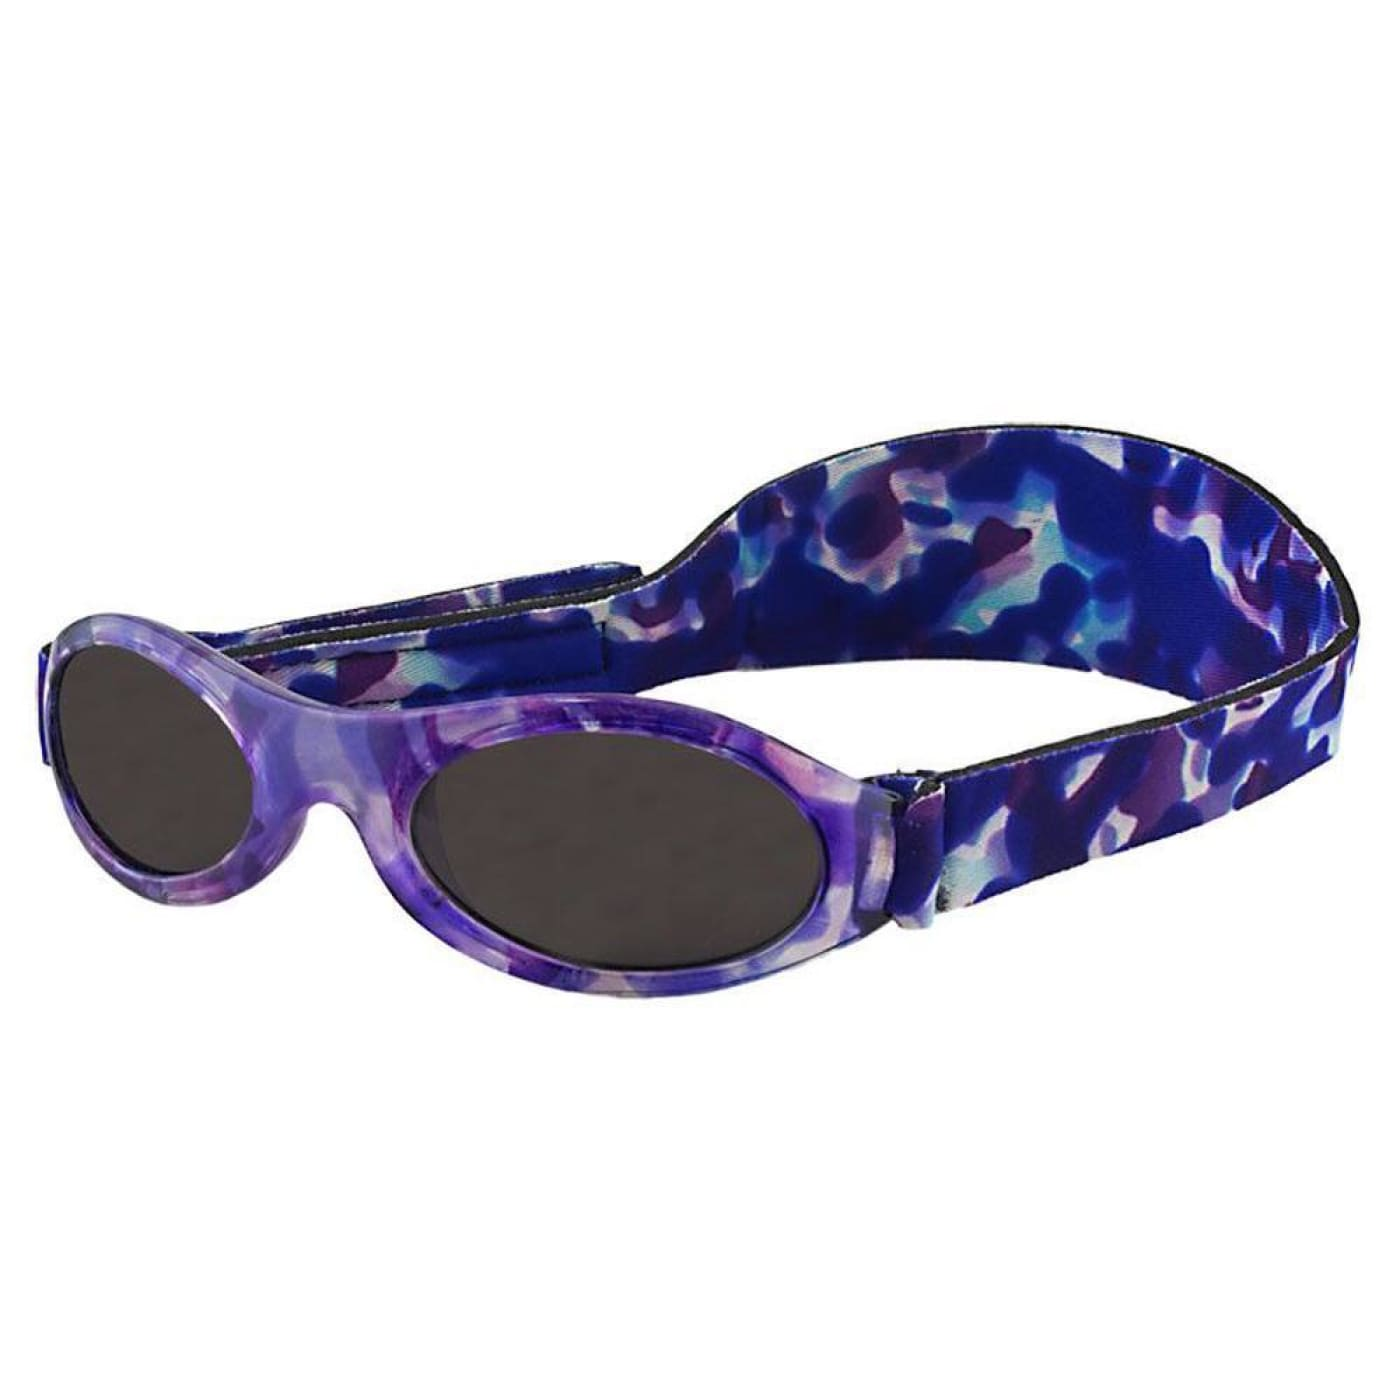 Adventure Baby Sunglasses - Purple Tortoise - Purple - BABY & TODDLER CLOTHING - SUNGLASSES/EAR MUFFS